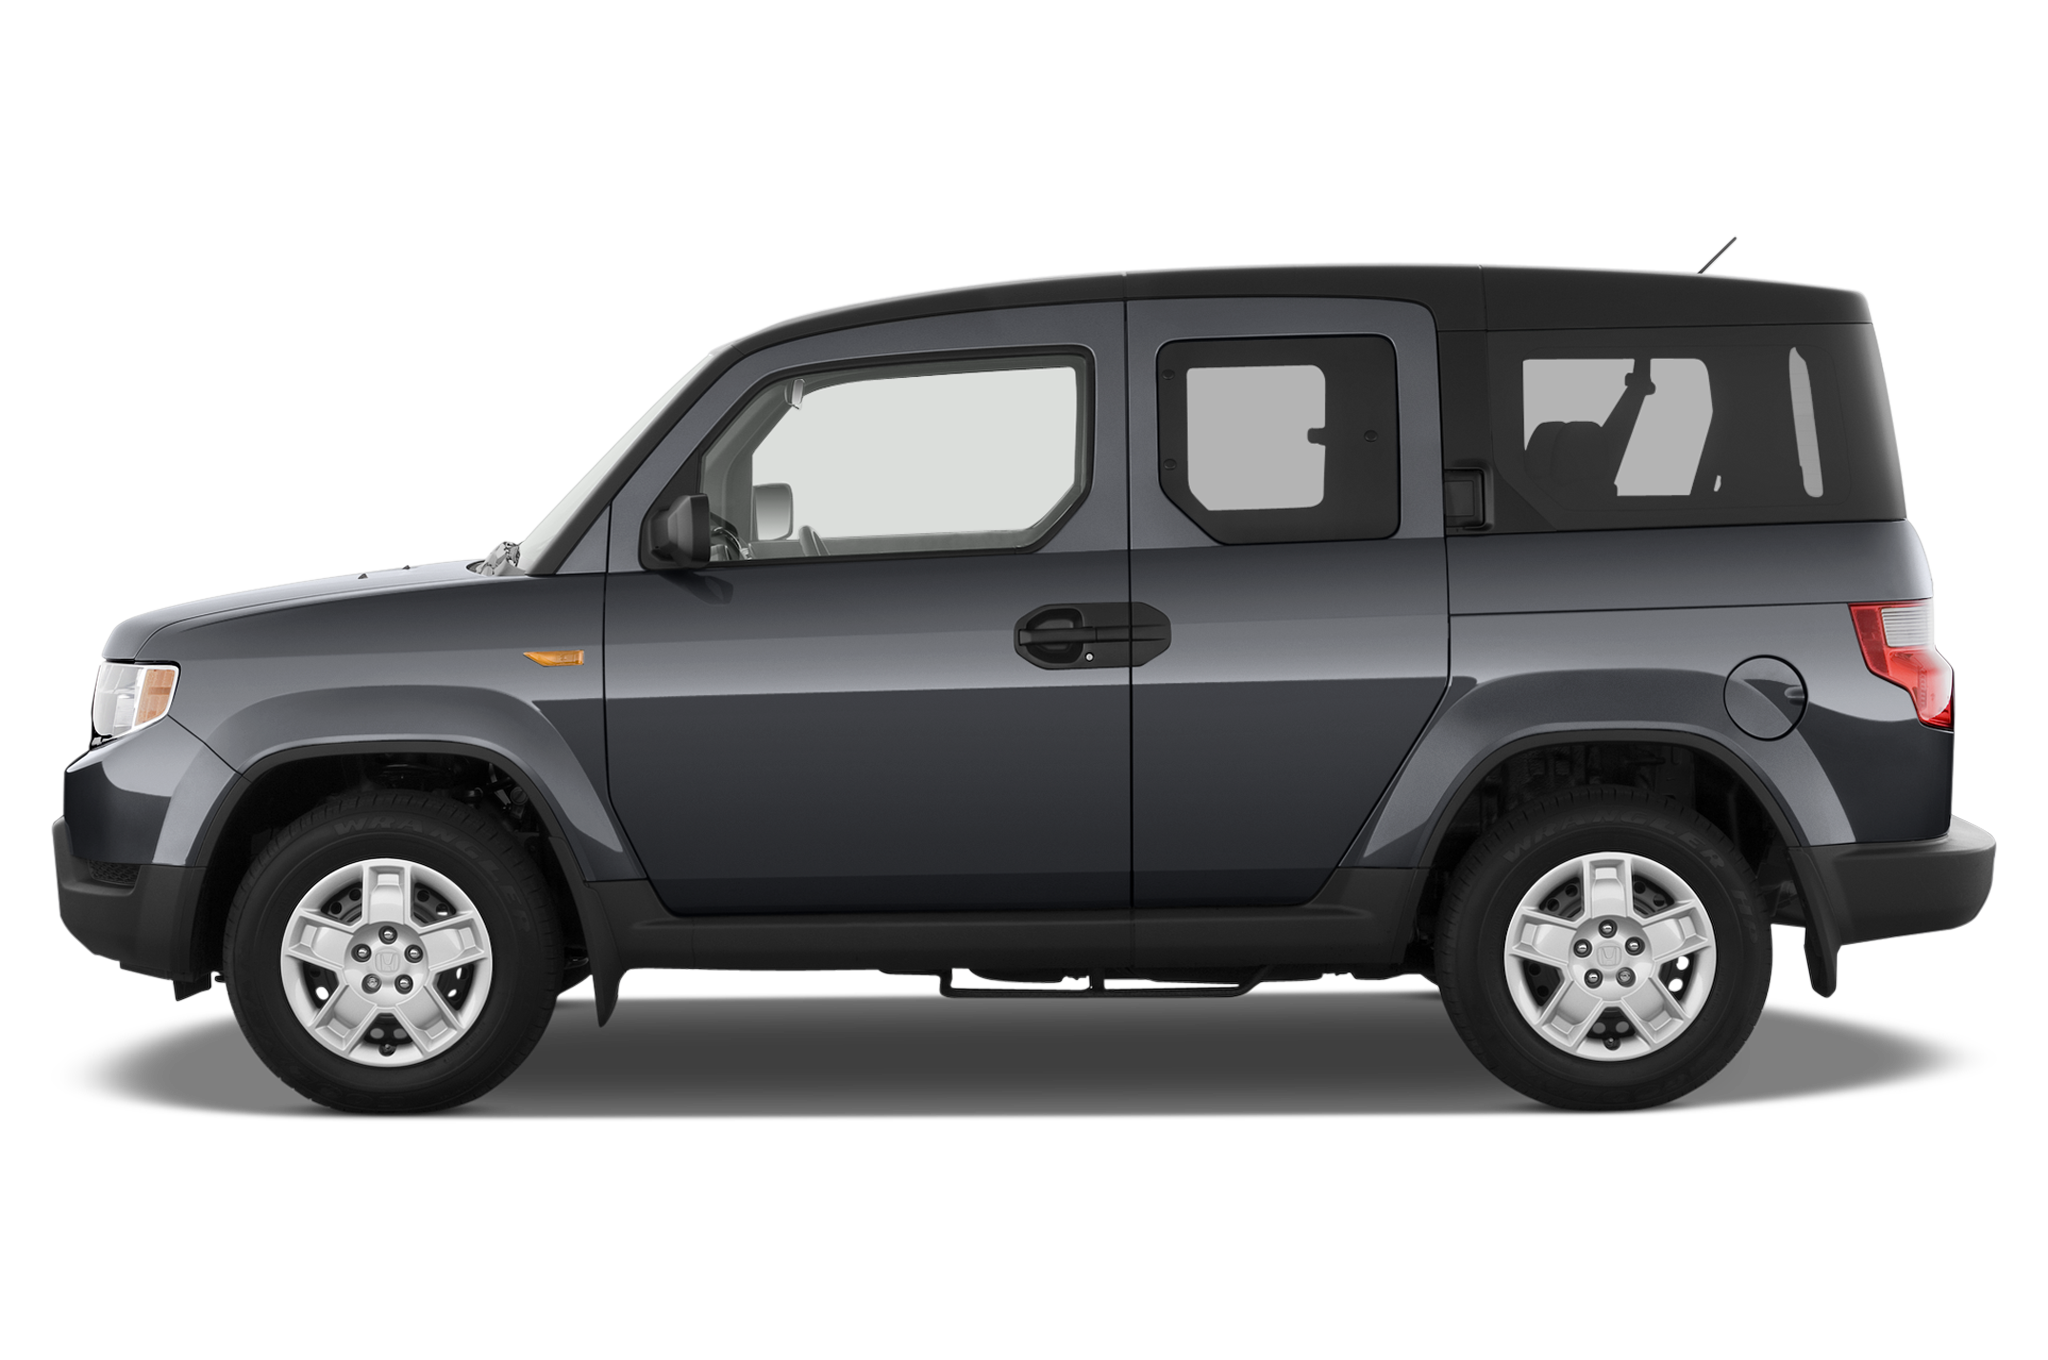 2010 honda element ex 4wd honda crossover suv review automobile magazine. Black Bedroom Furniture Sets. Home Design Ideas